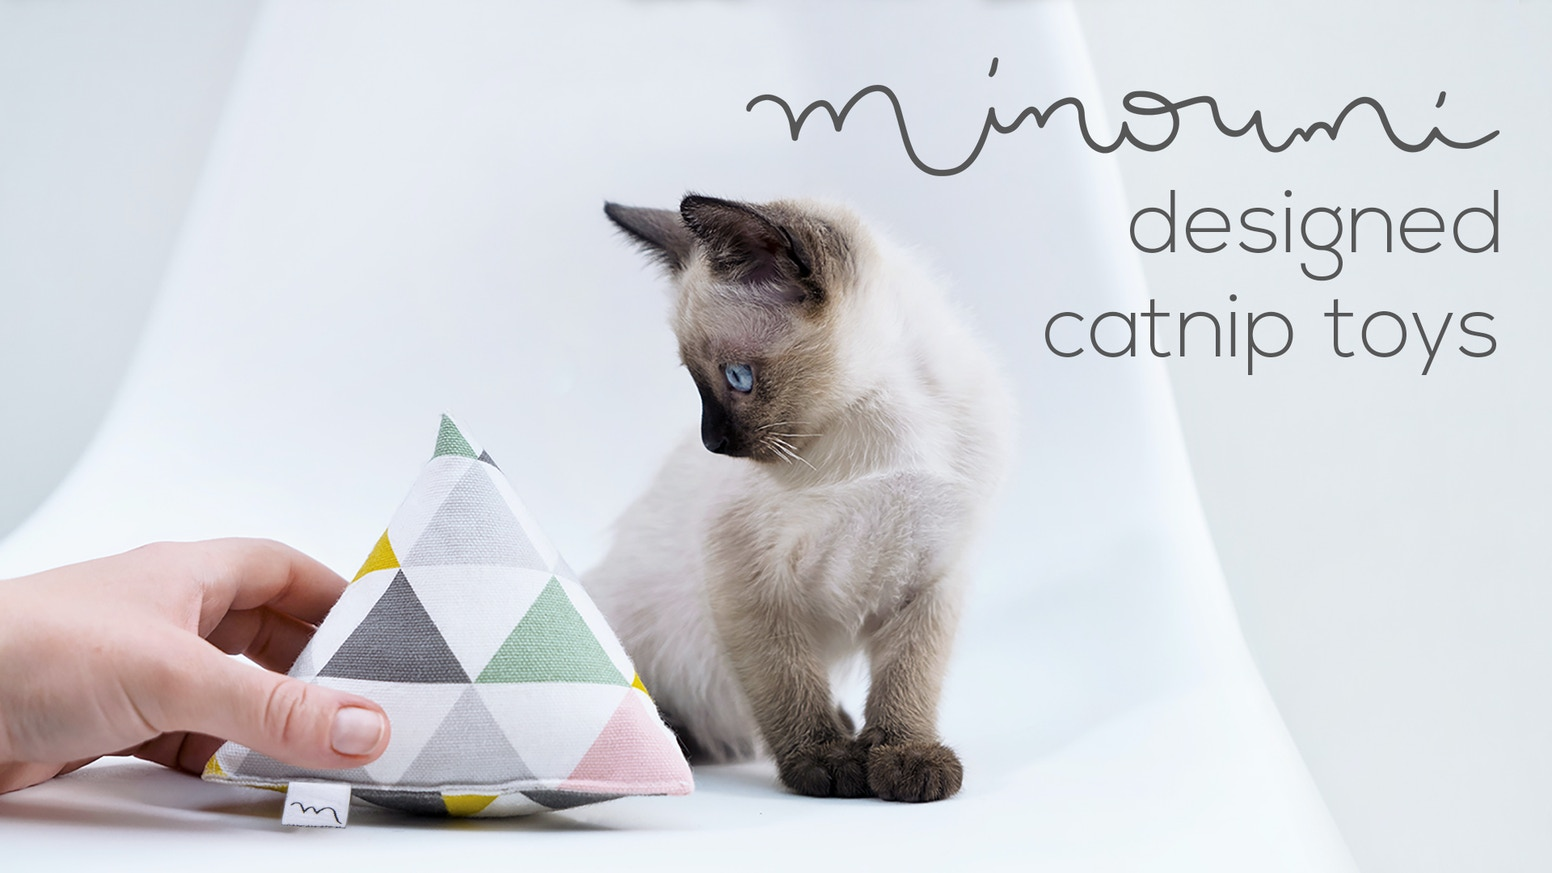 Pyramid shaped catnip toys that fit perfectly into the design of your living interior! Handmade with love in Germany.